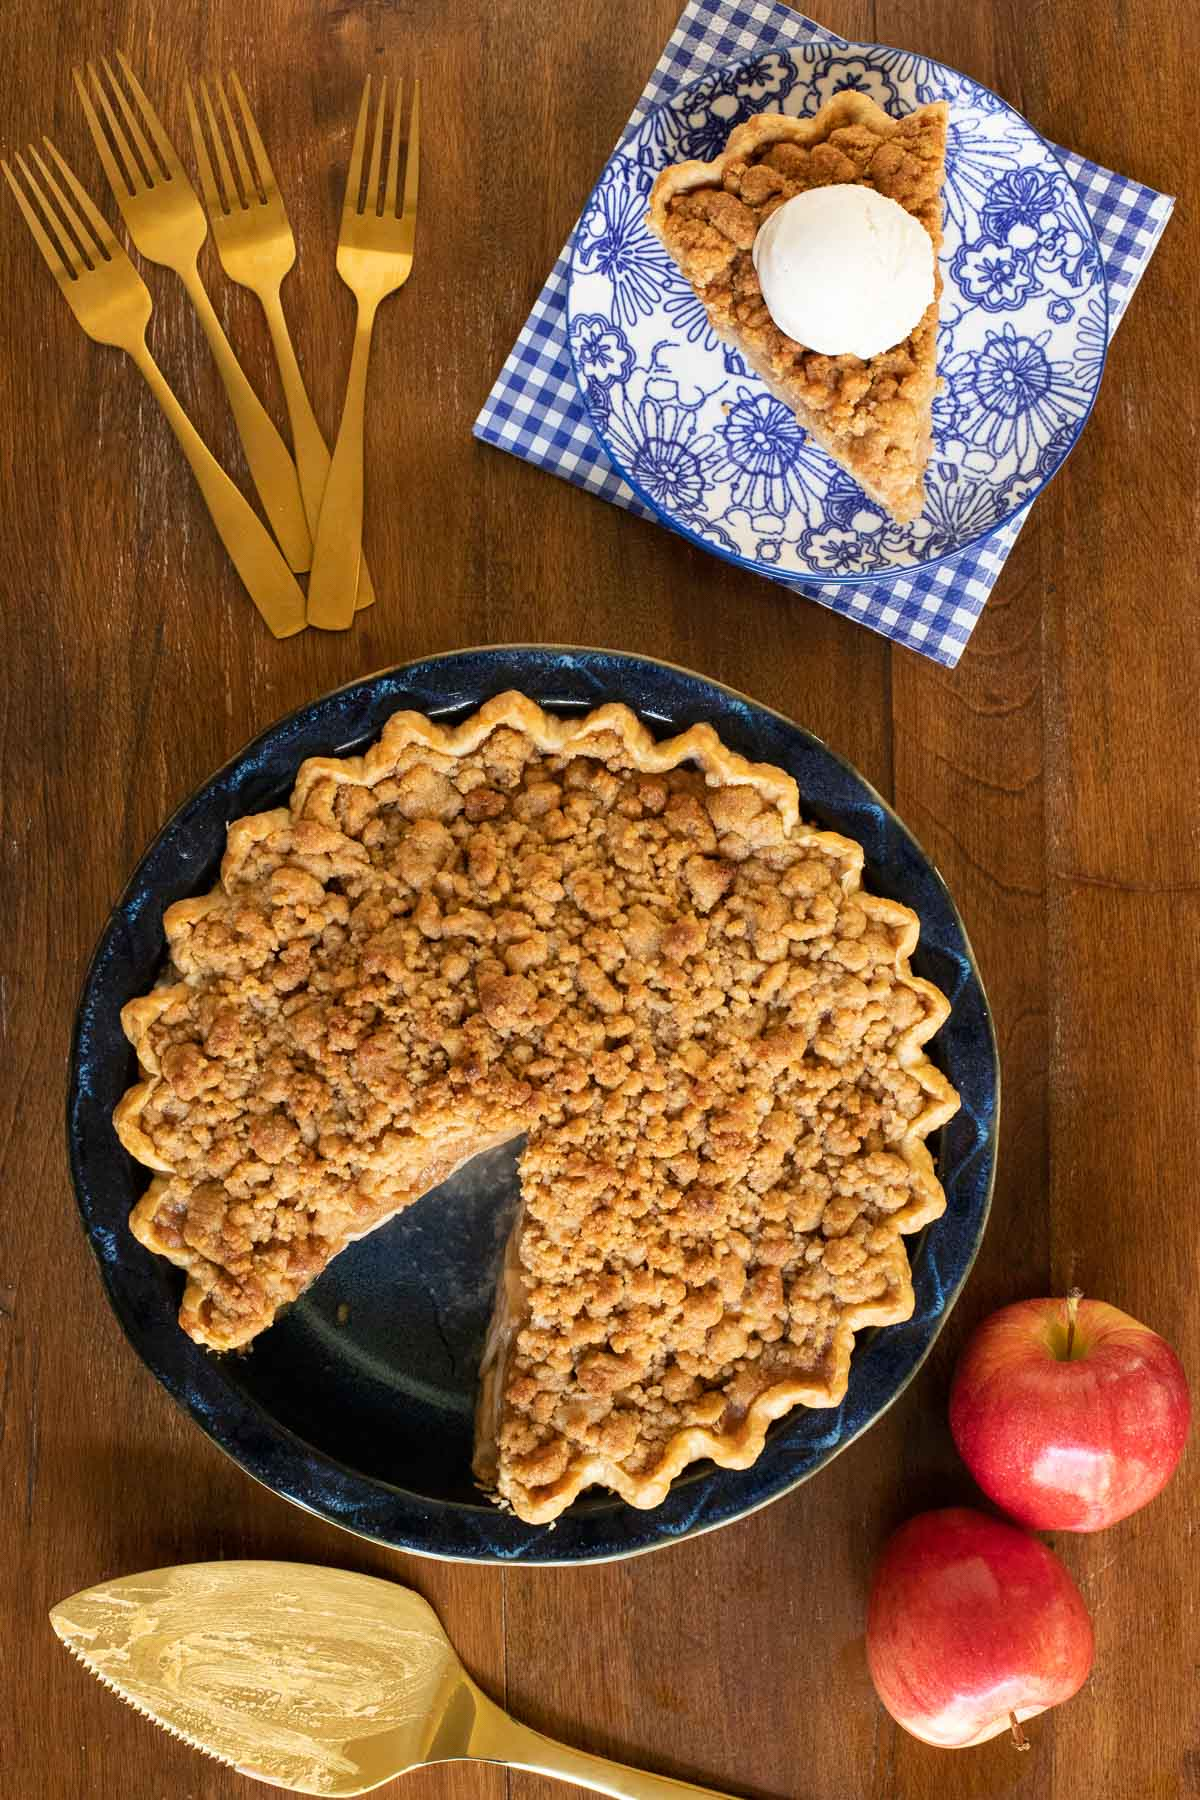 Overhead vertical photo of Annie's Easy Apple Pie on a wood table with a slice of the pie with ice cream on a blue and white patterned plate.